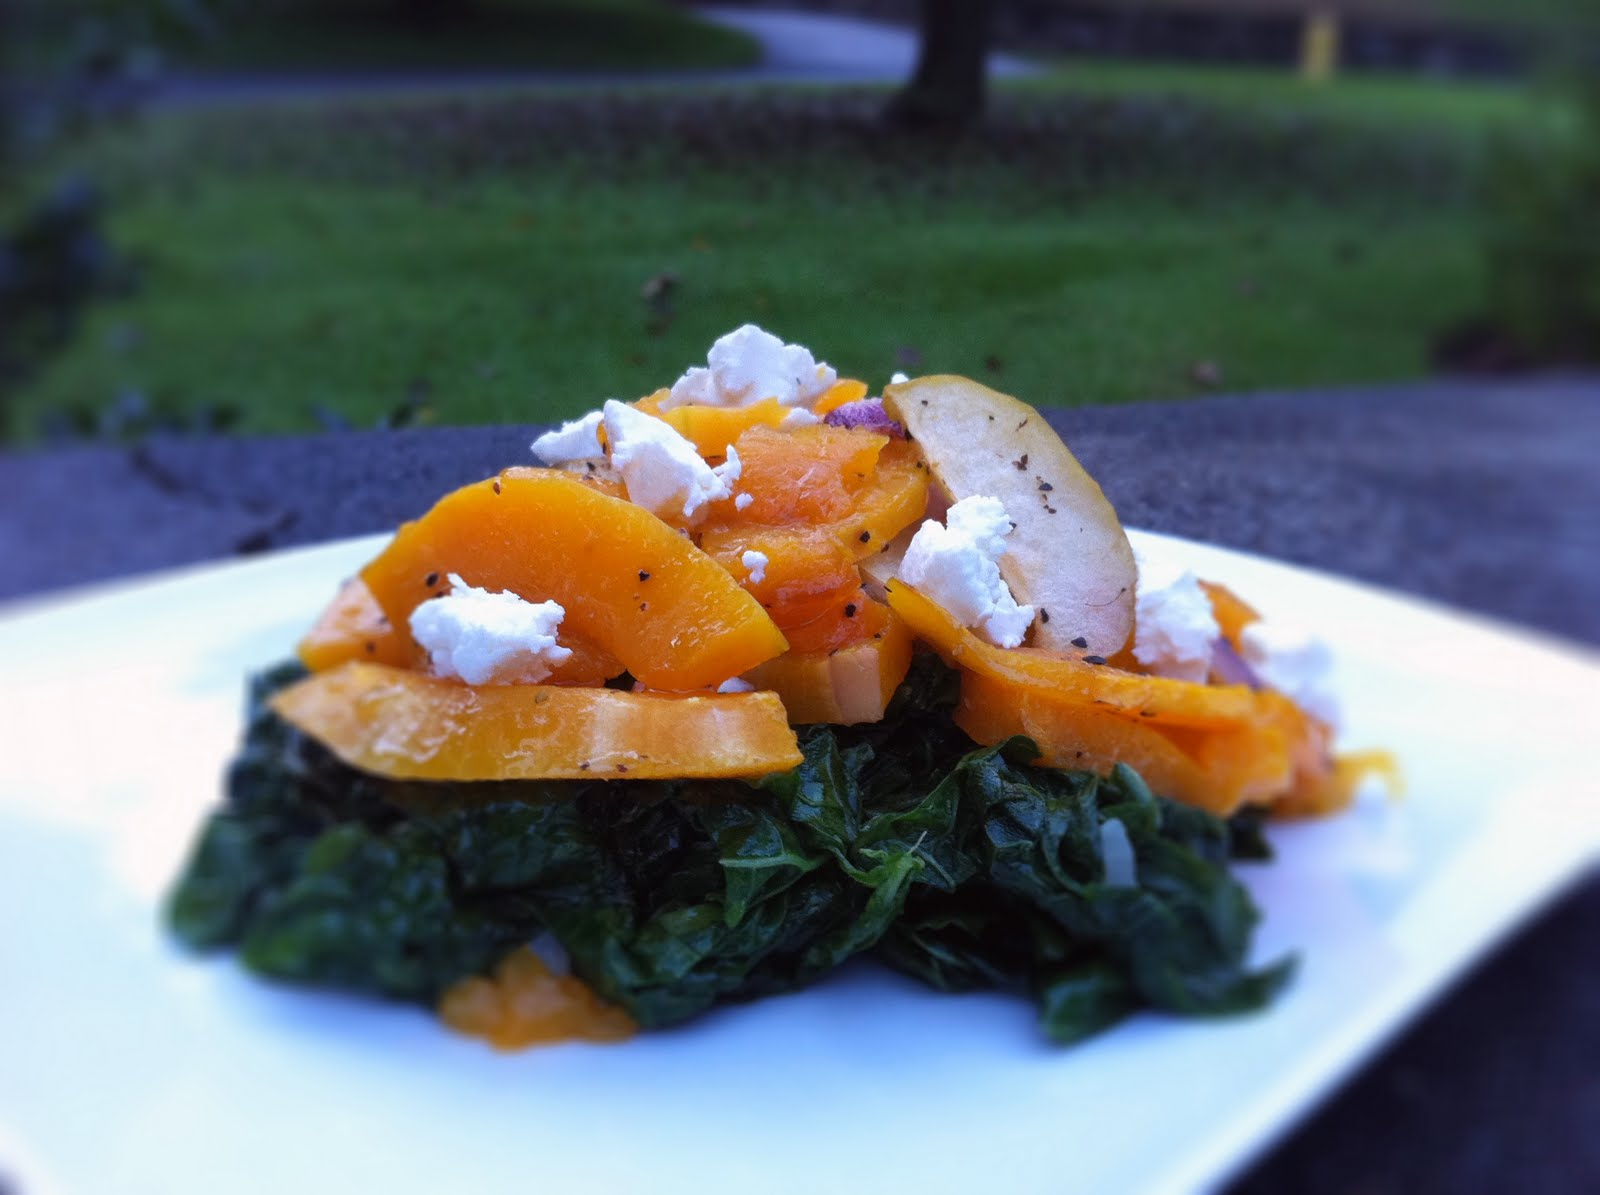 Roasted butternut squash with apple on kale